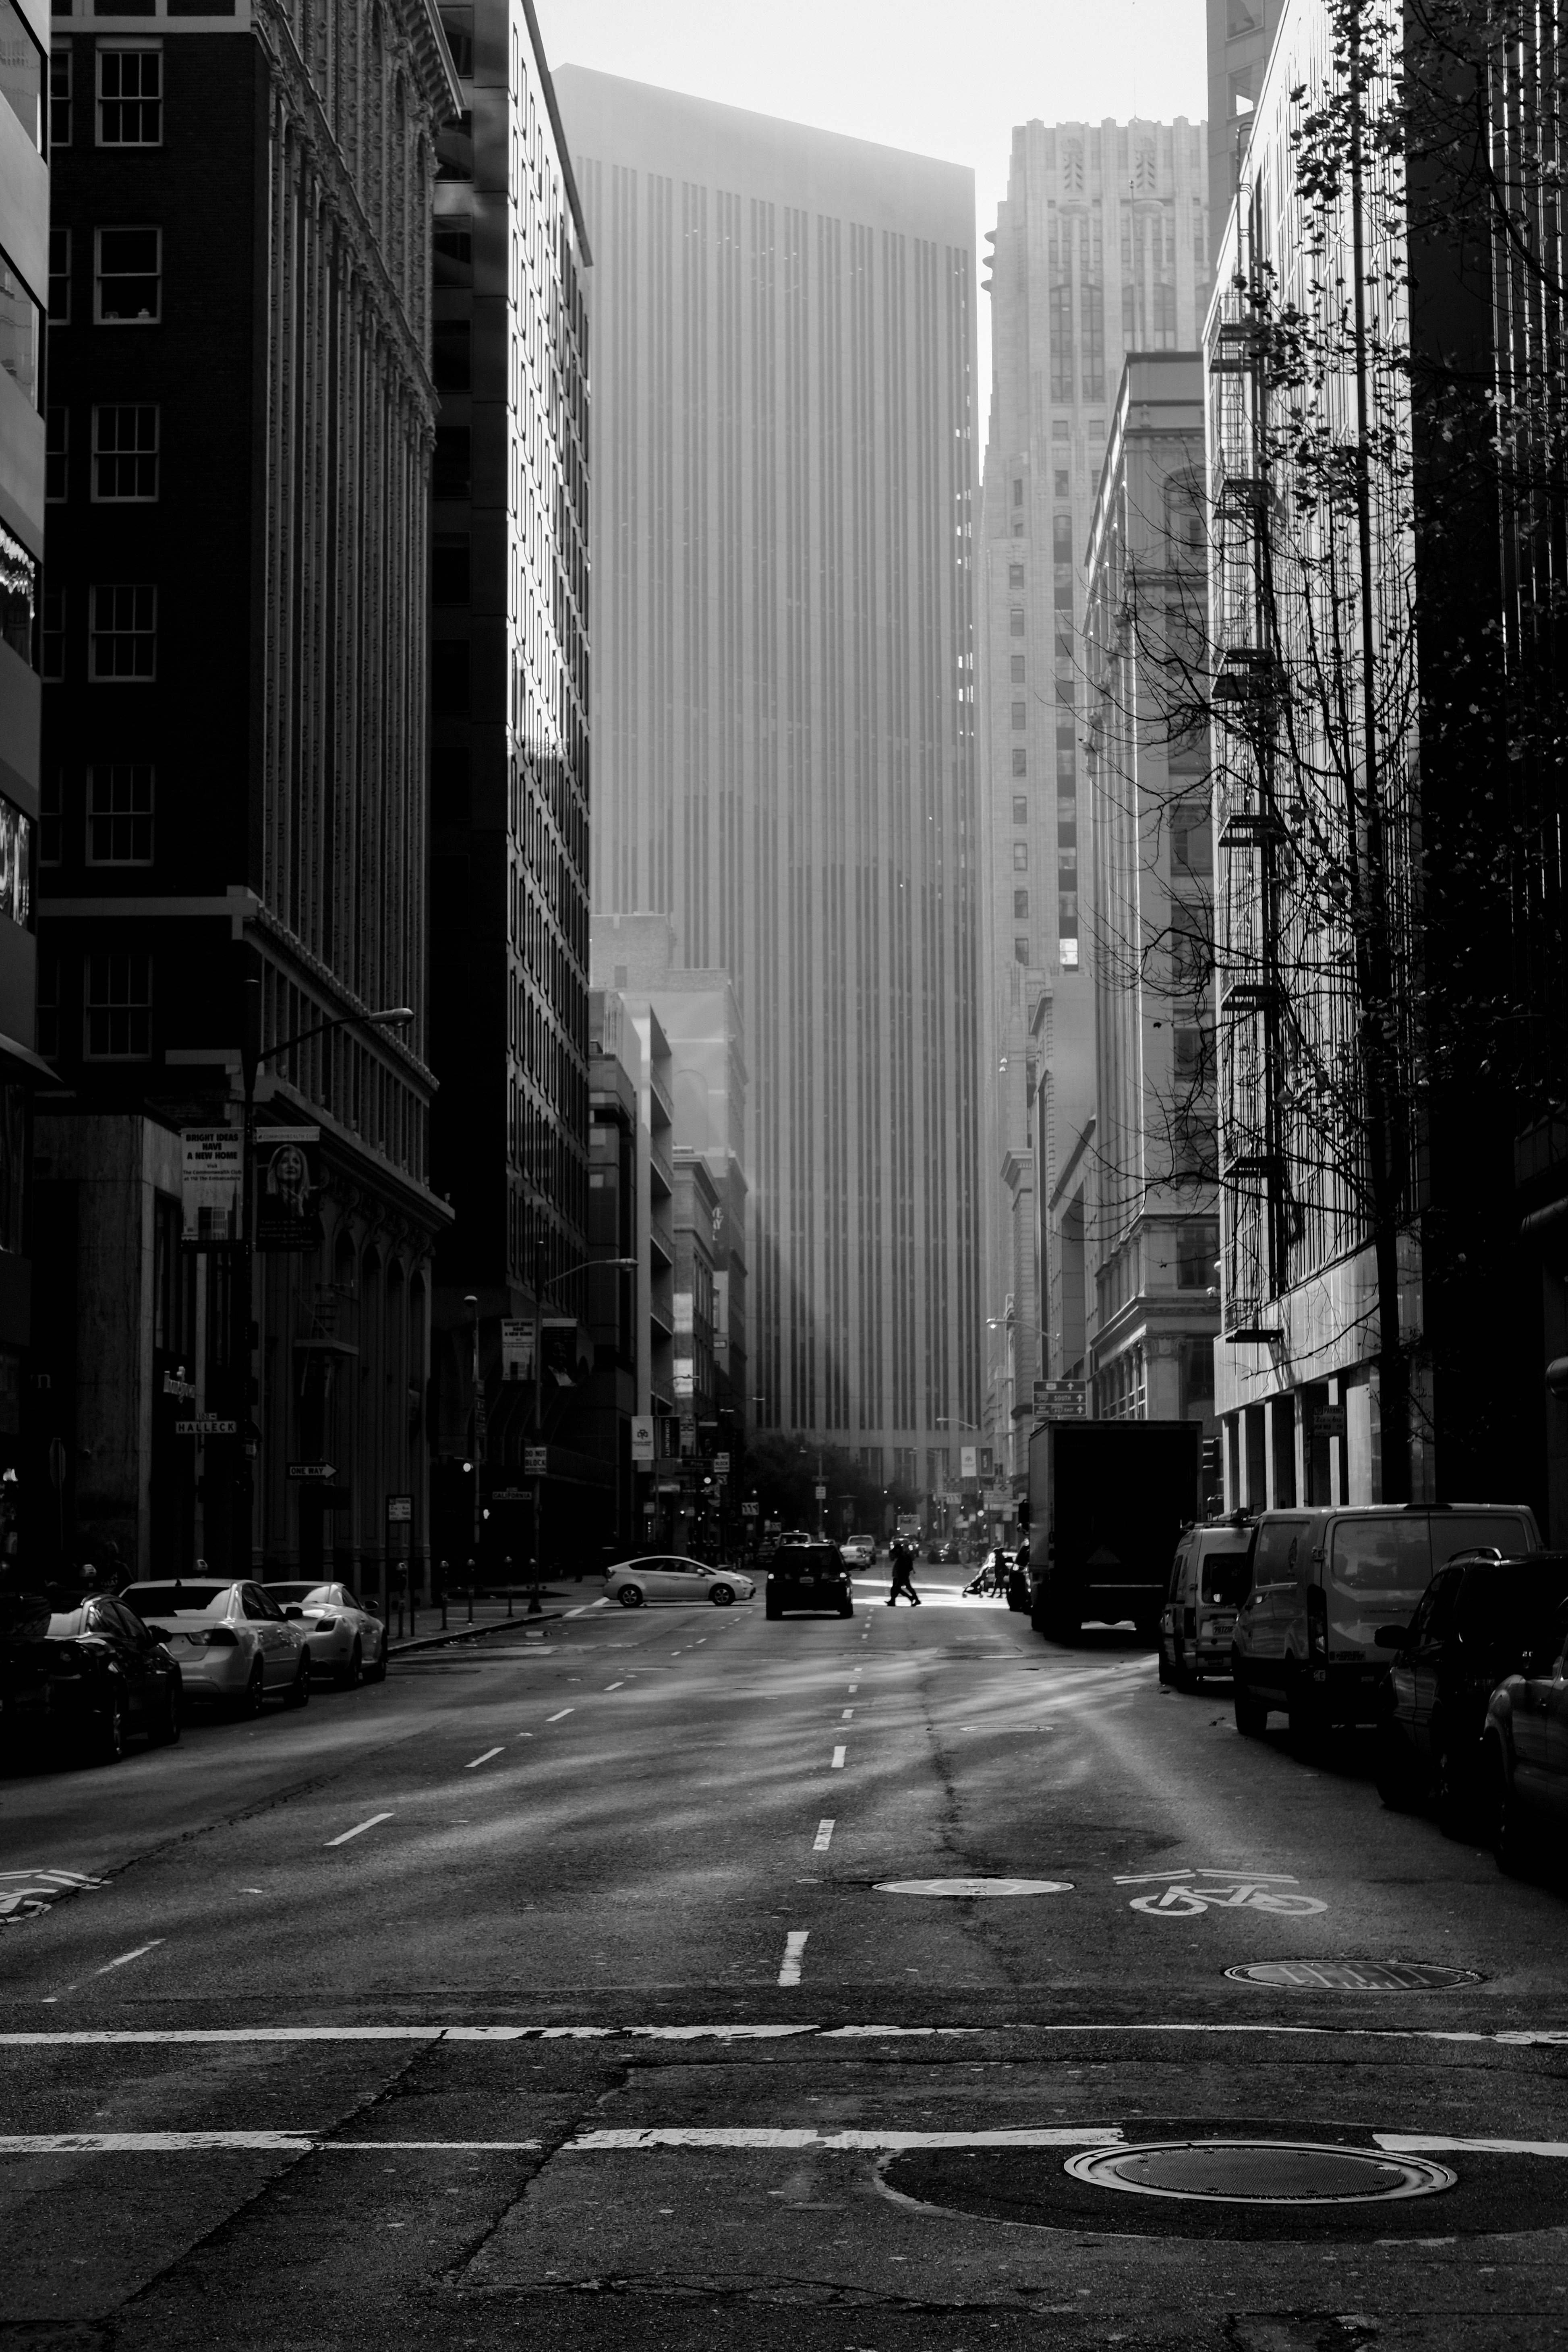 greyscale photo of road with vehicles in between buildings